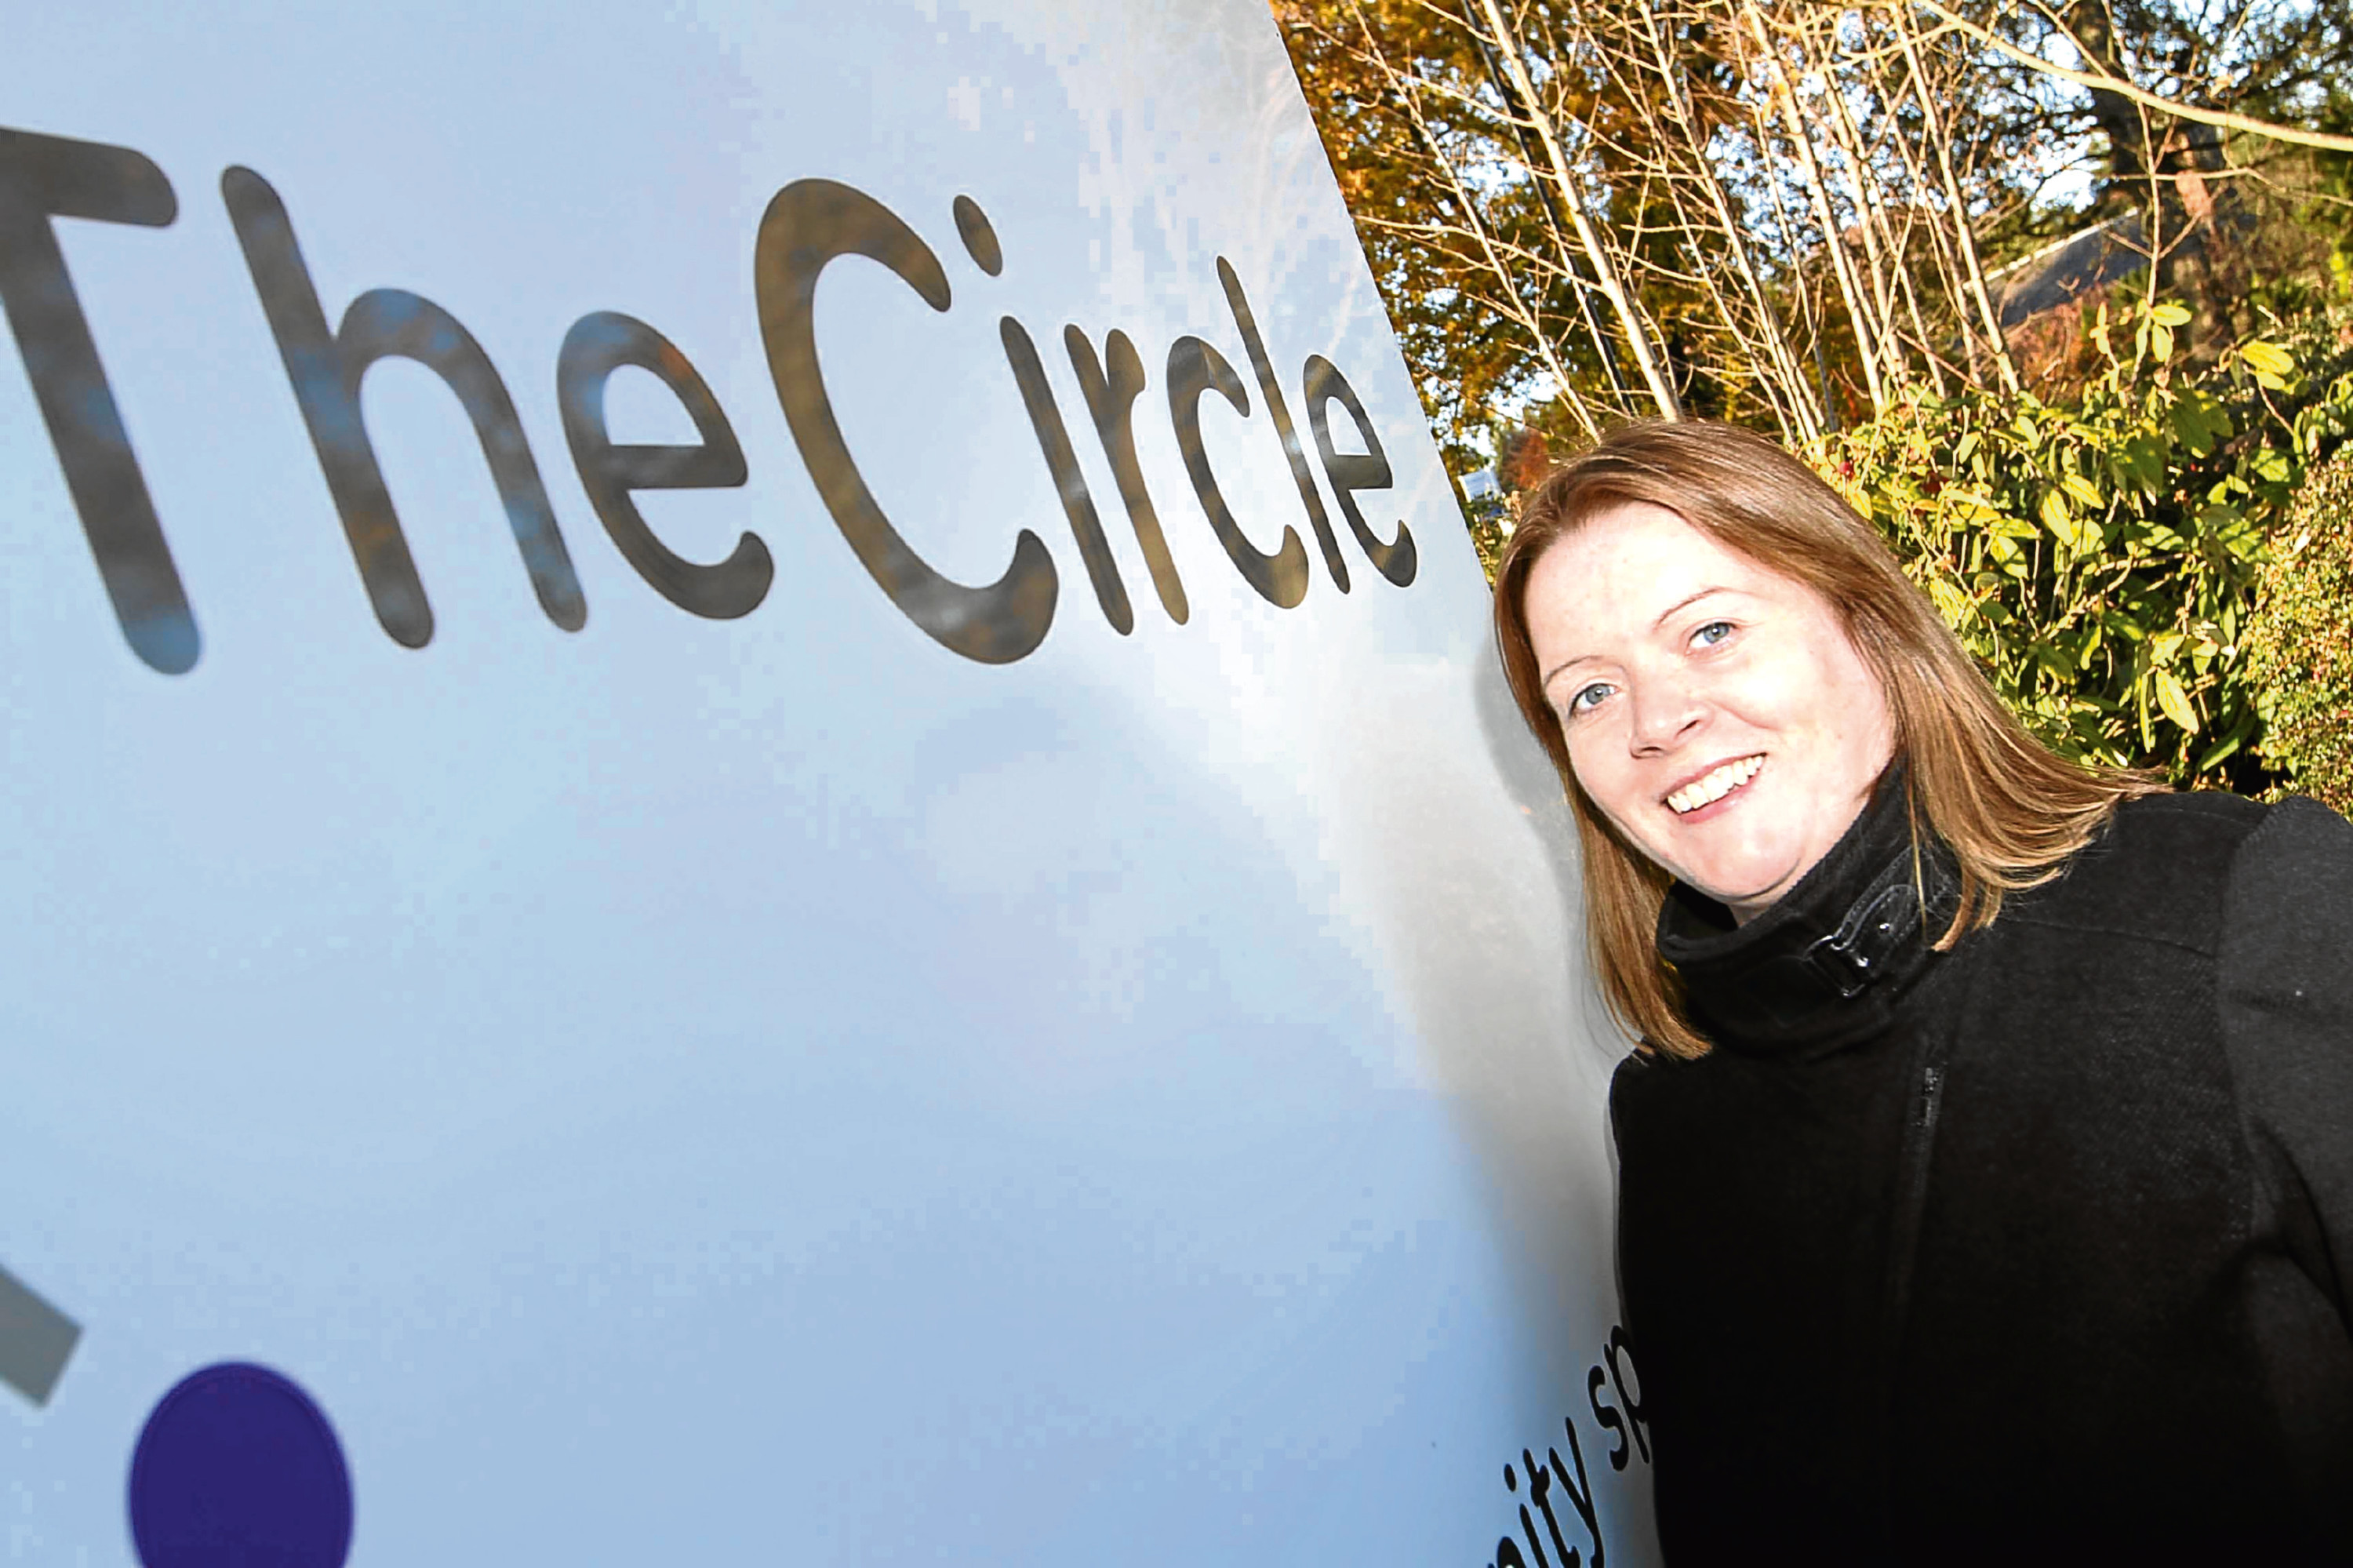 Kirsty Thomson, founder and CEO of The Circle